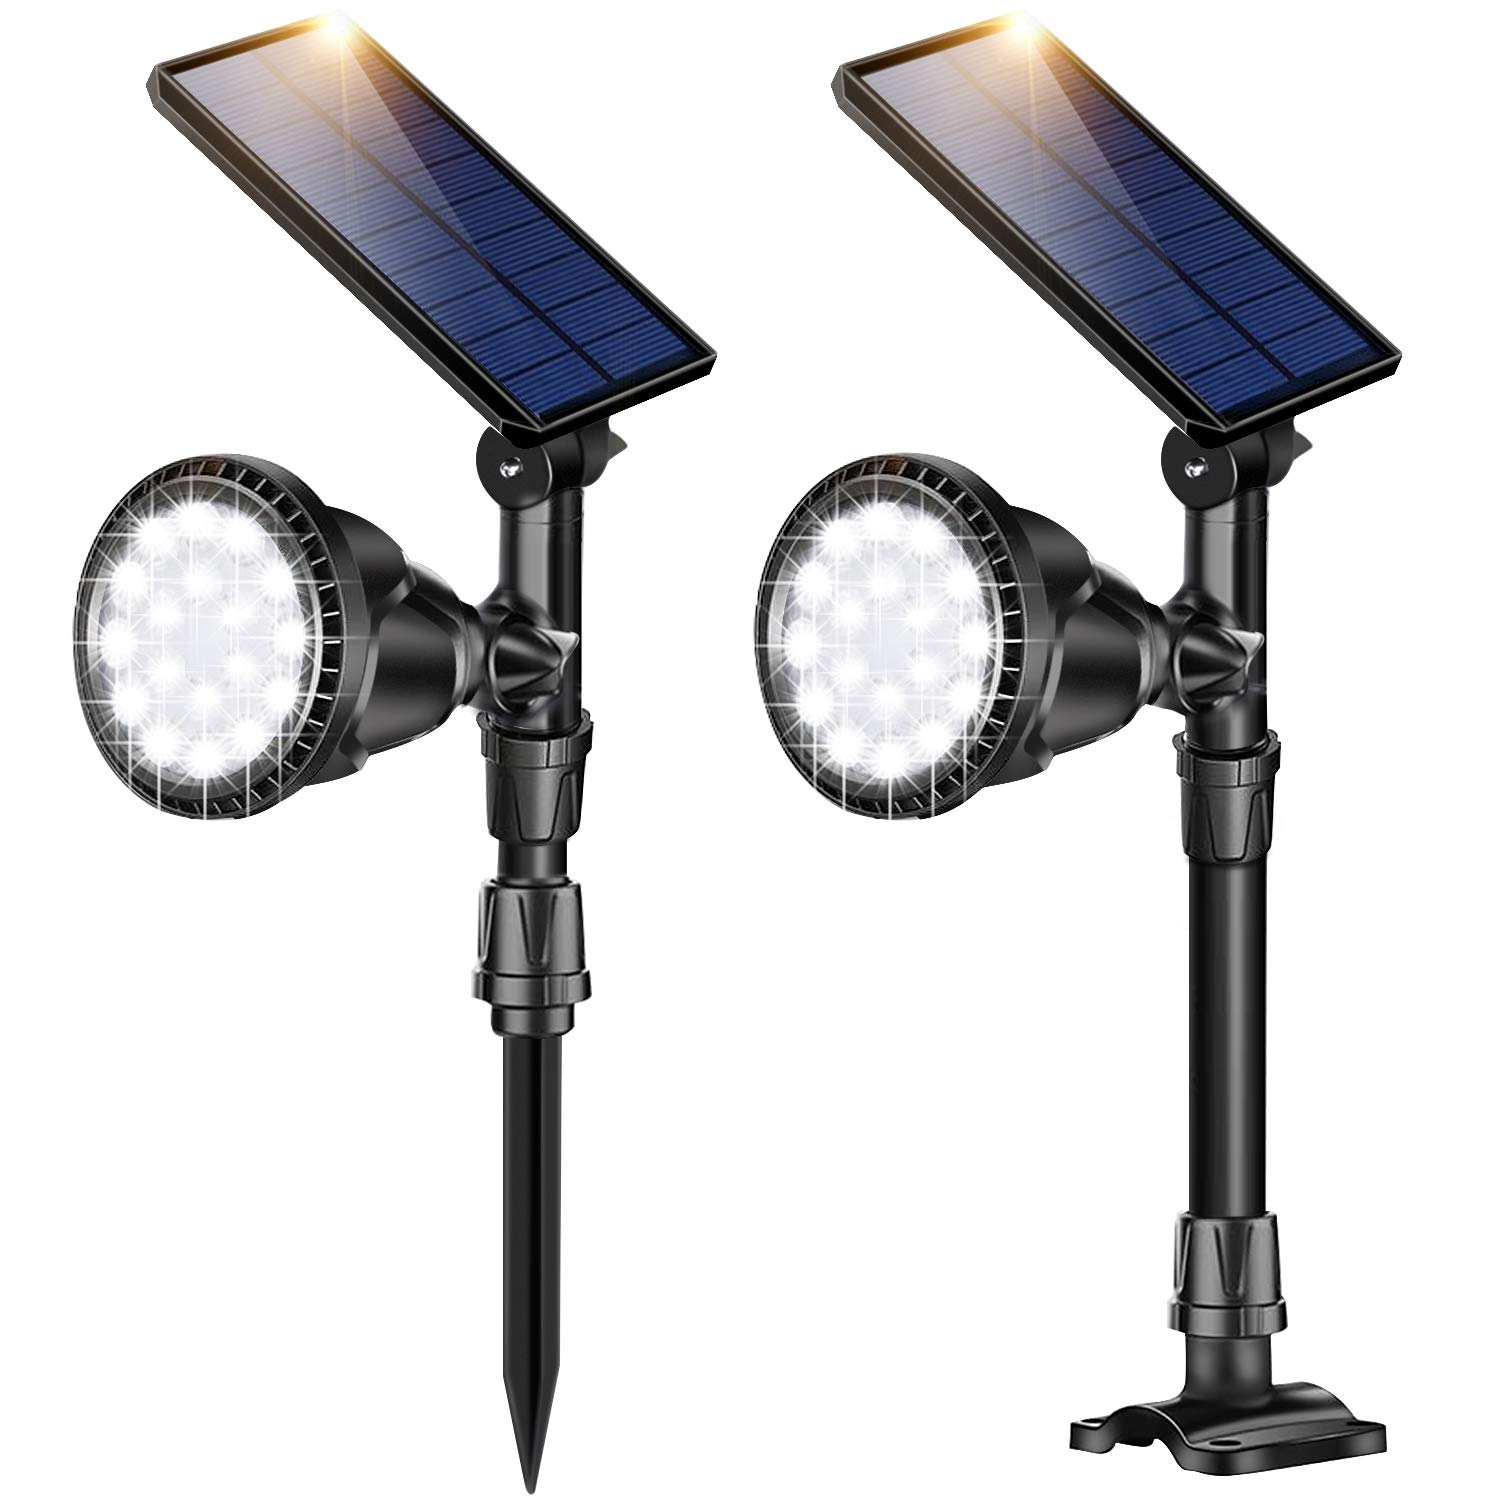 DS Lighting Outdoor Solar Spotlights, Super Bright 18 LED Security Light Waterproof Wall Lamps for Garden Landscape Patio Porch Deck Garage (Cool White, 2 Pack)